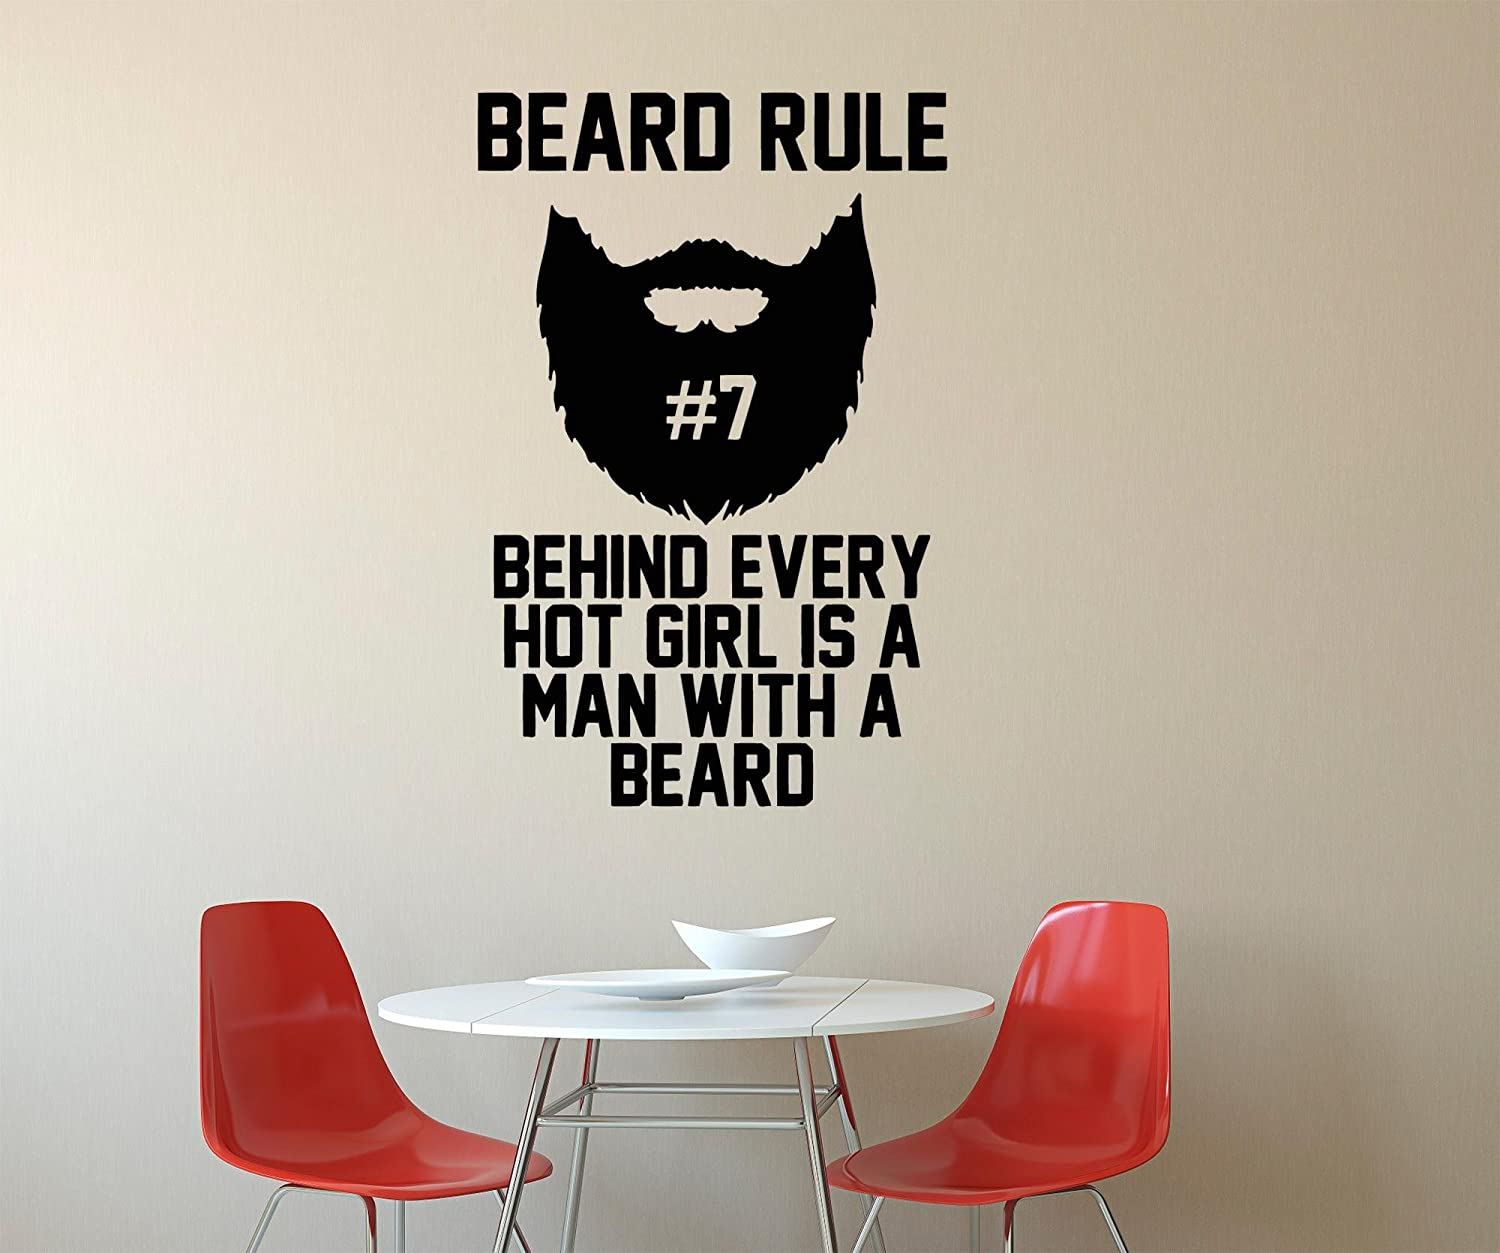 Amazon com assorted decals beard rule behind every hot girl is a man with a man with a bard wall decals decor vinyl sticker gmo1931 home kitchen